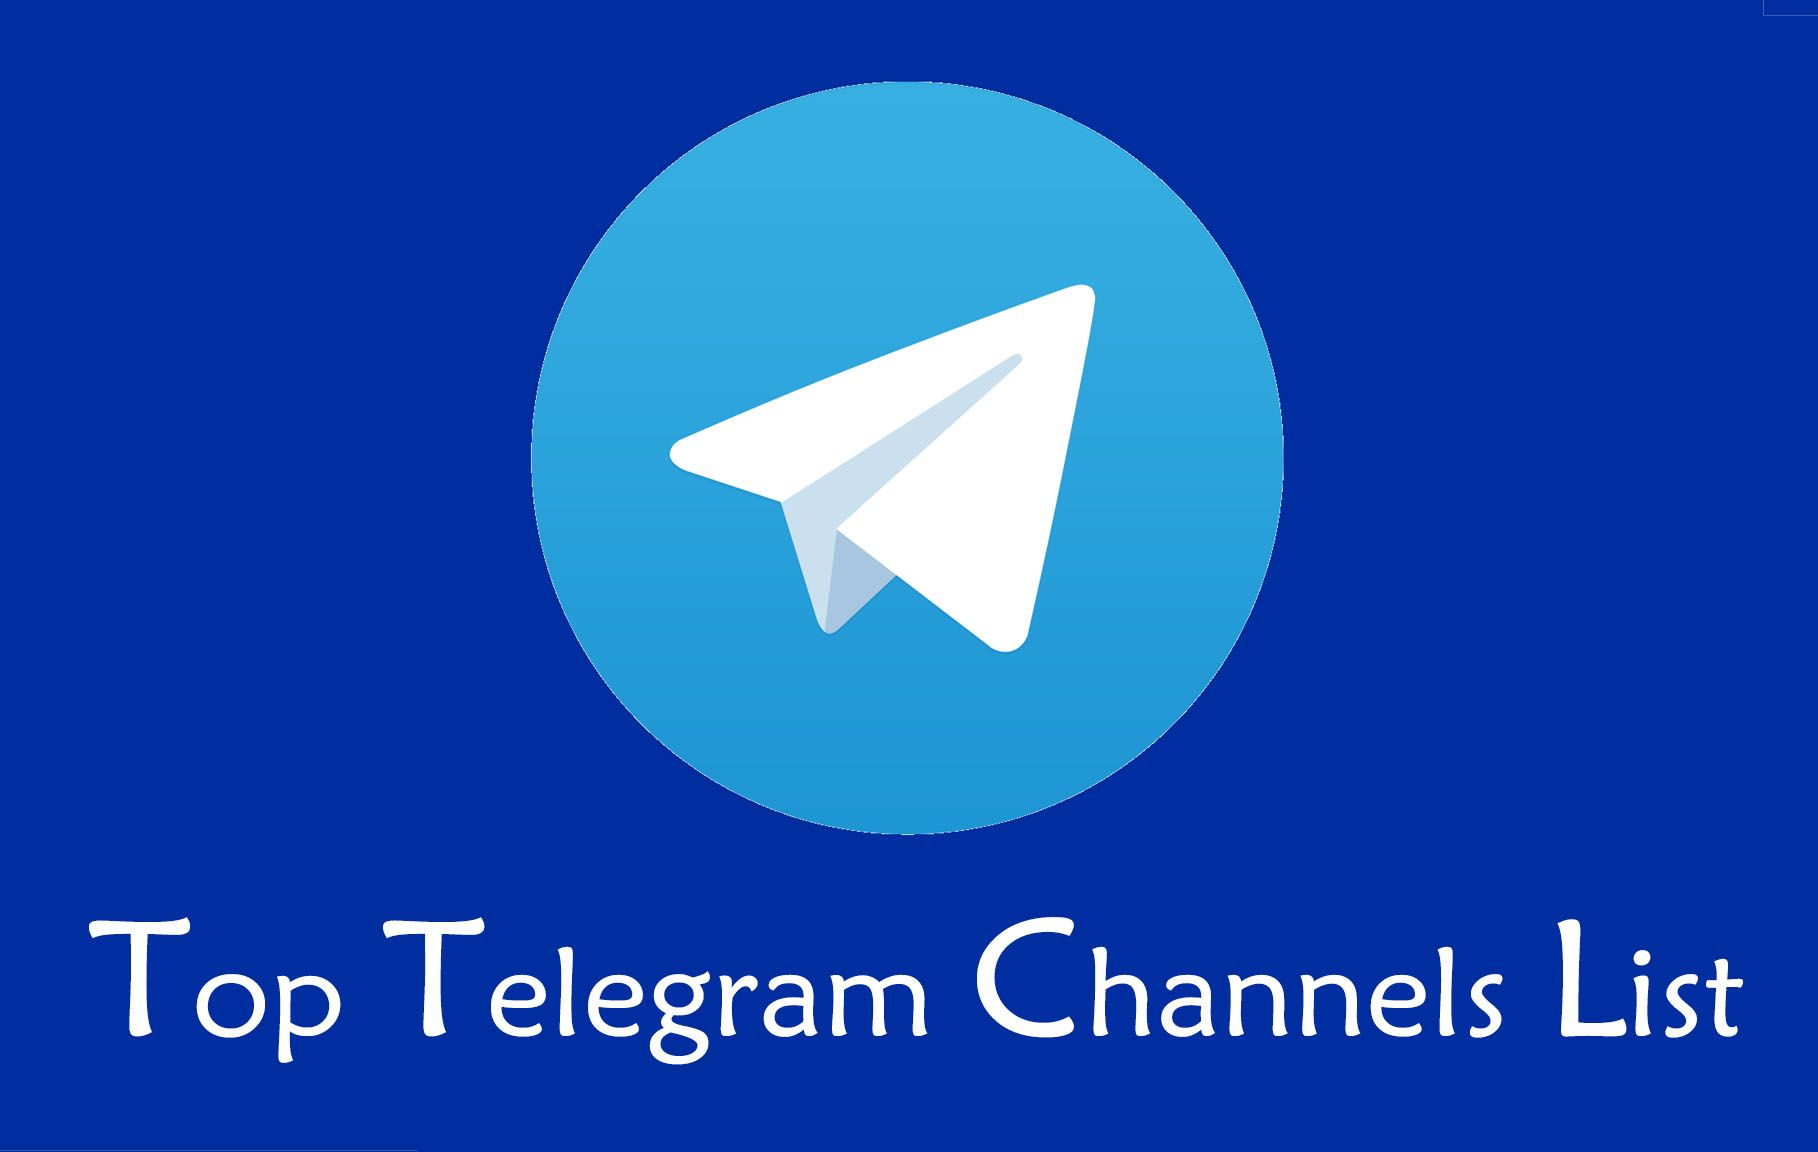 100+ Top Telegram Channels List To Join In 2018 | Top | Best